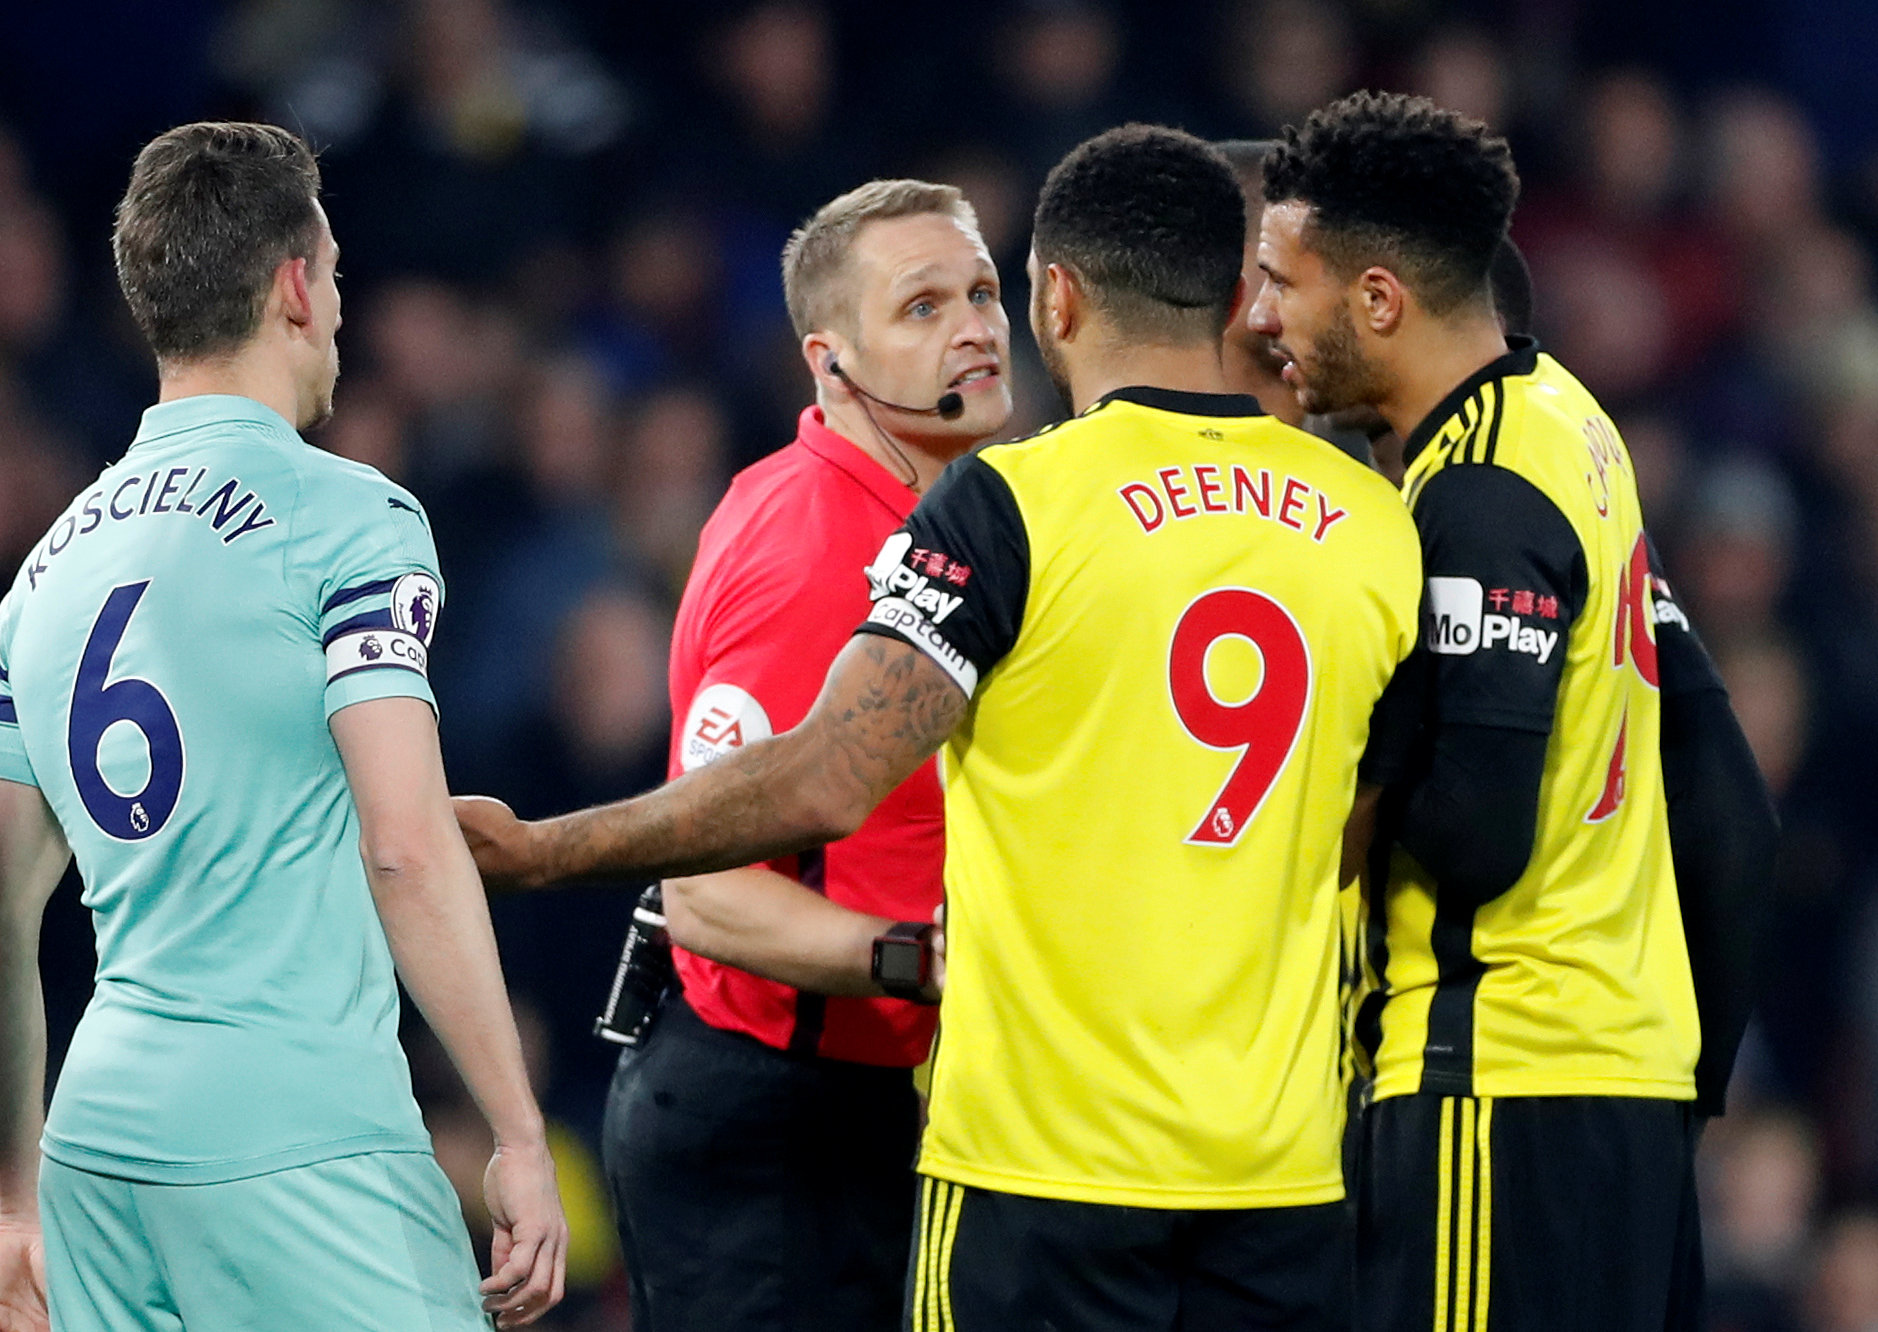 Deeney sees Red as Hornets lose at home